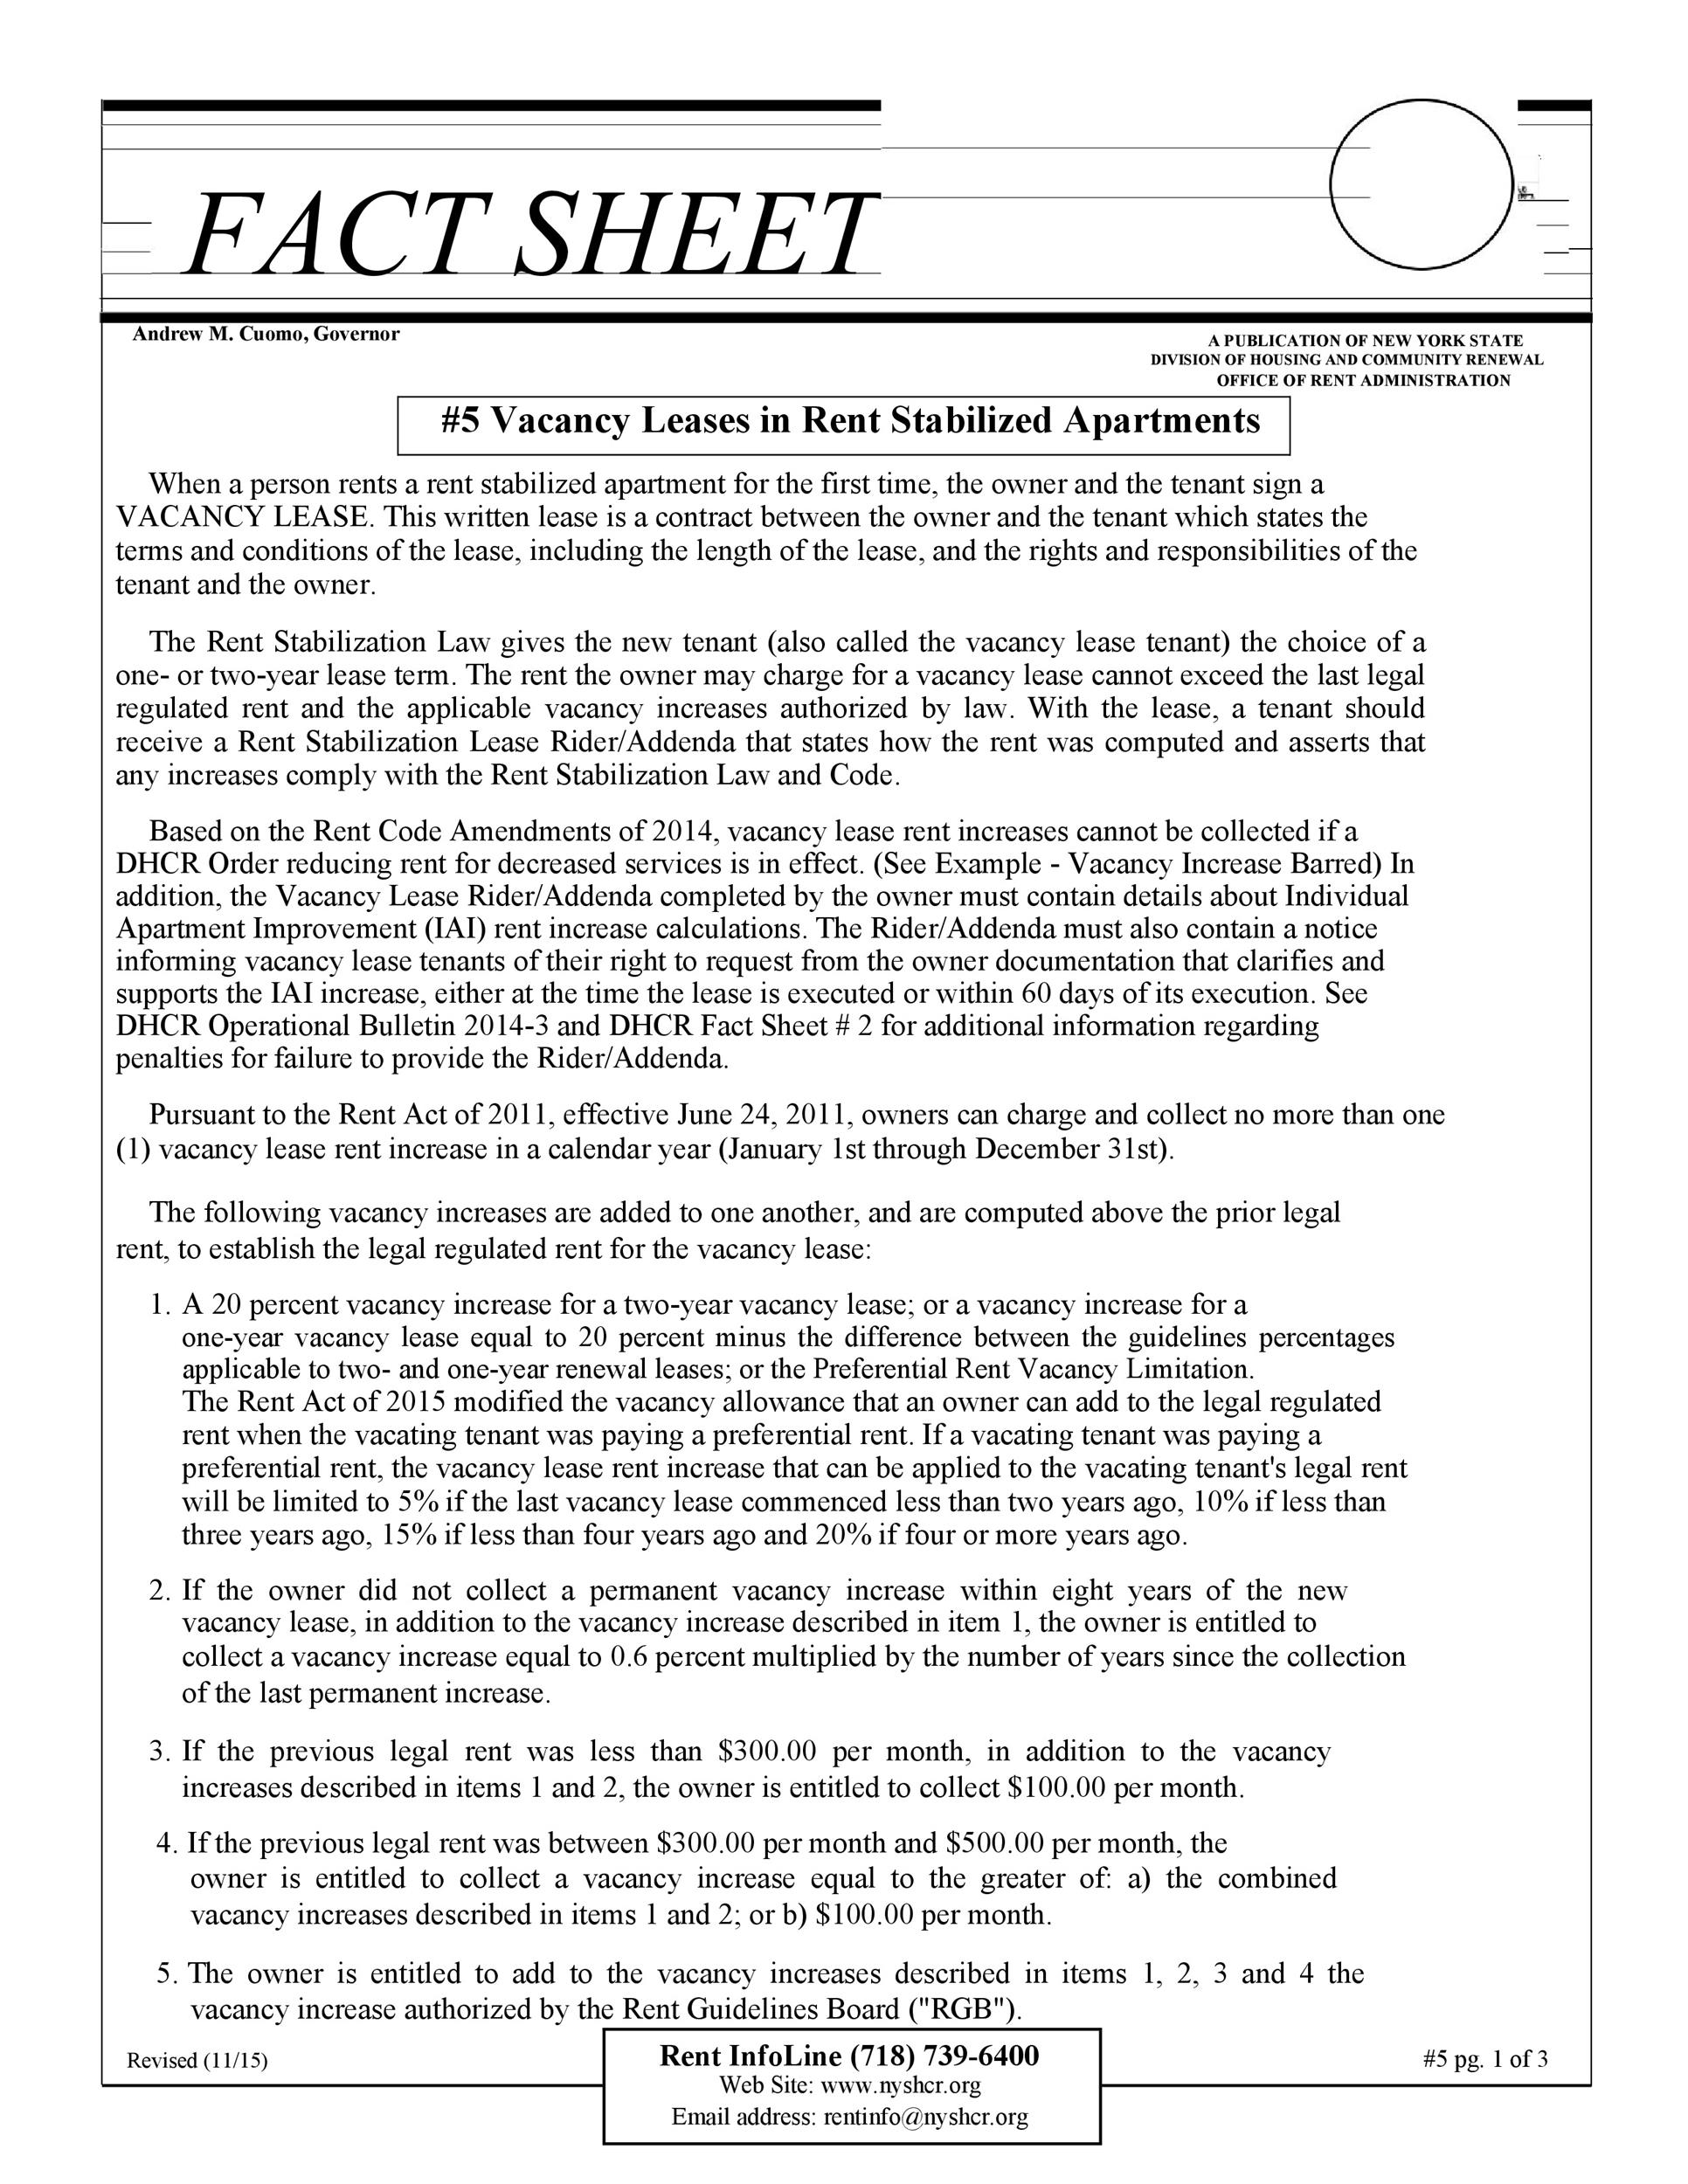 Free Fact sheet Template 53